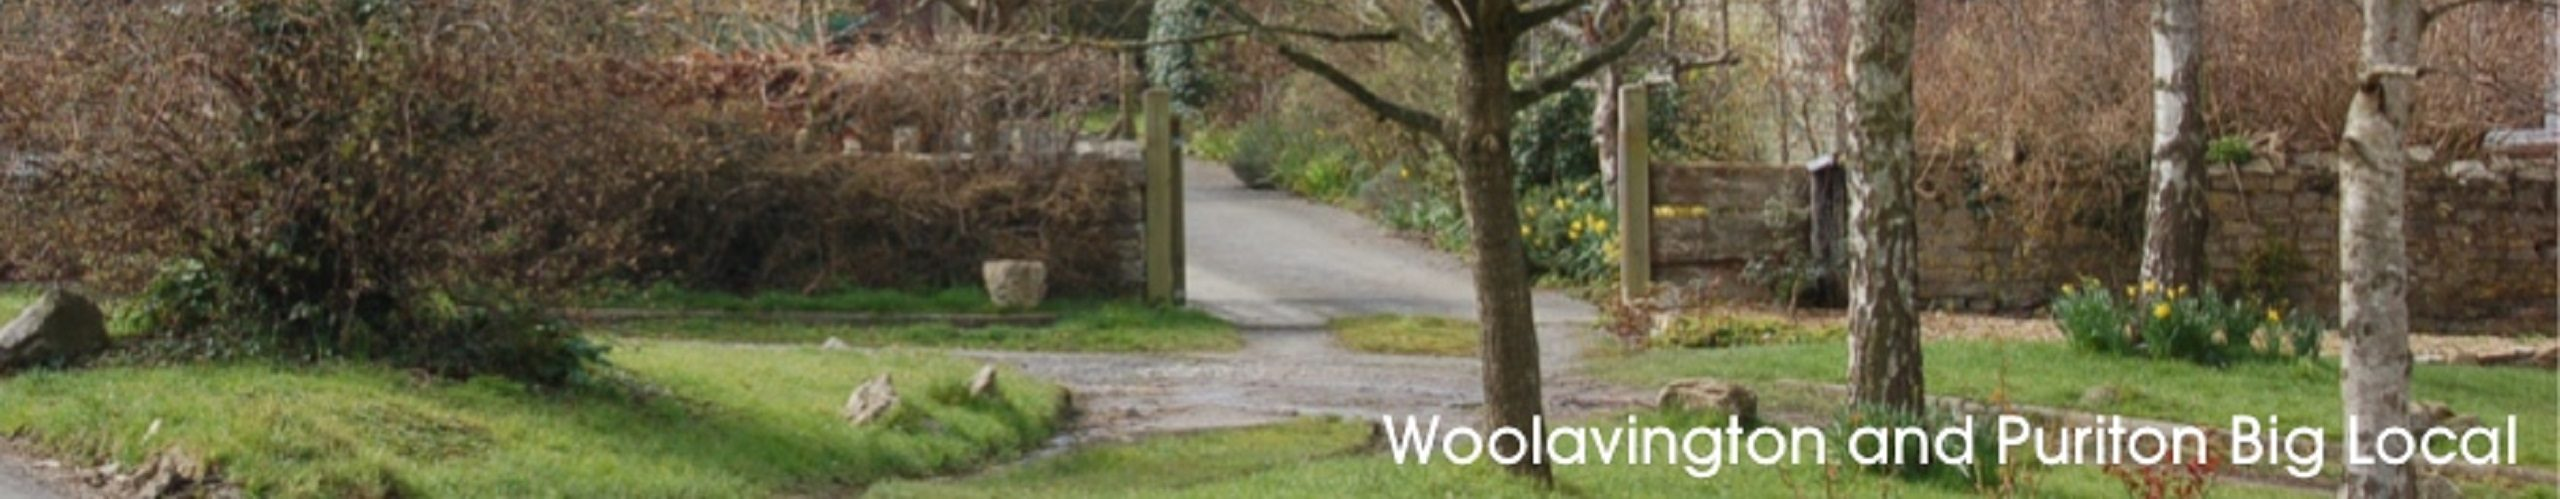 Villages Together in Woolavington and Puriton